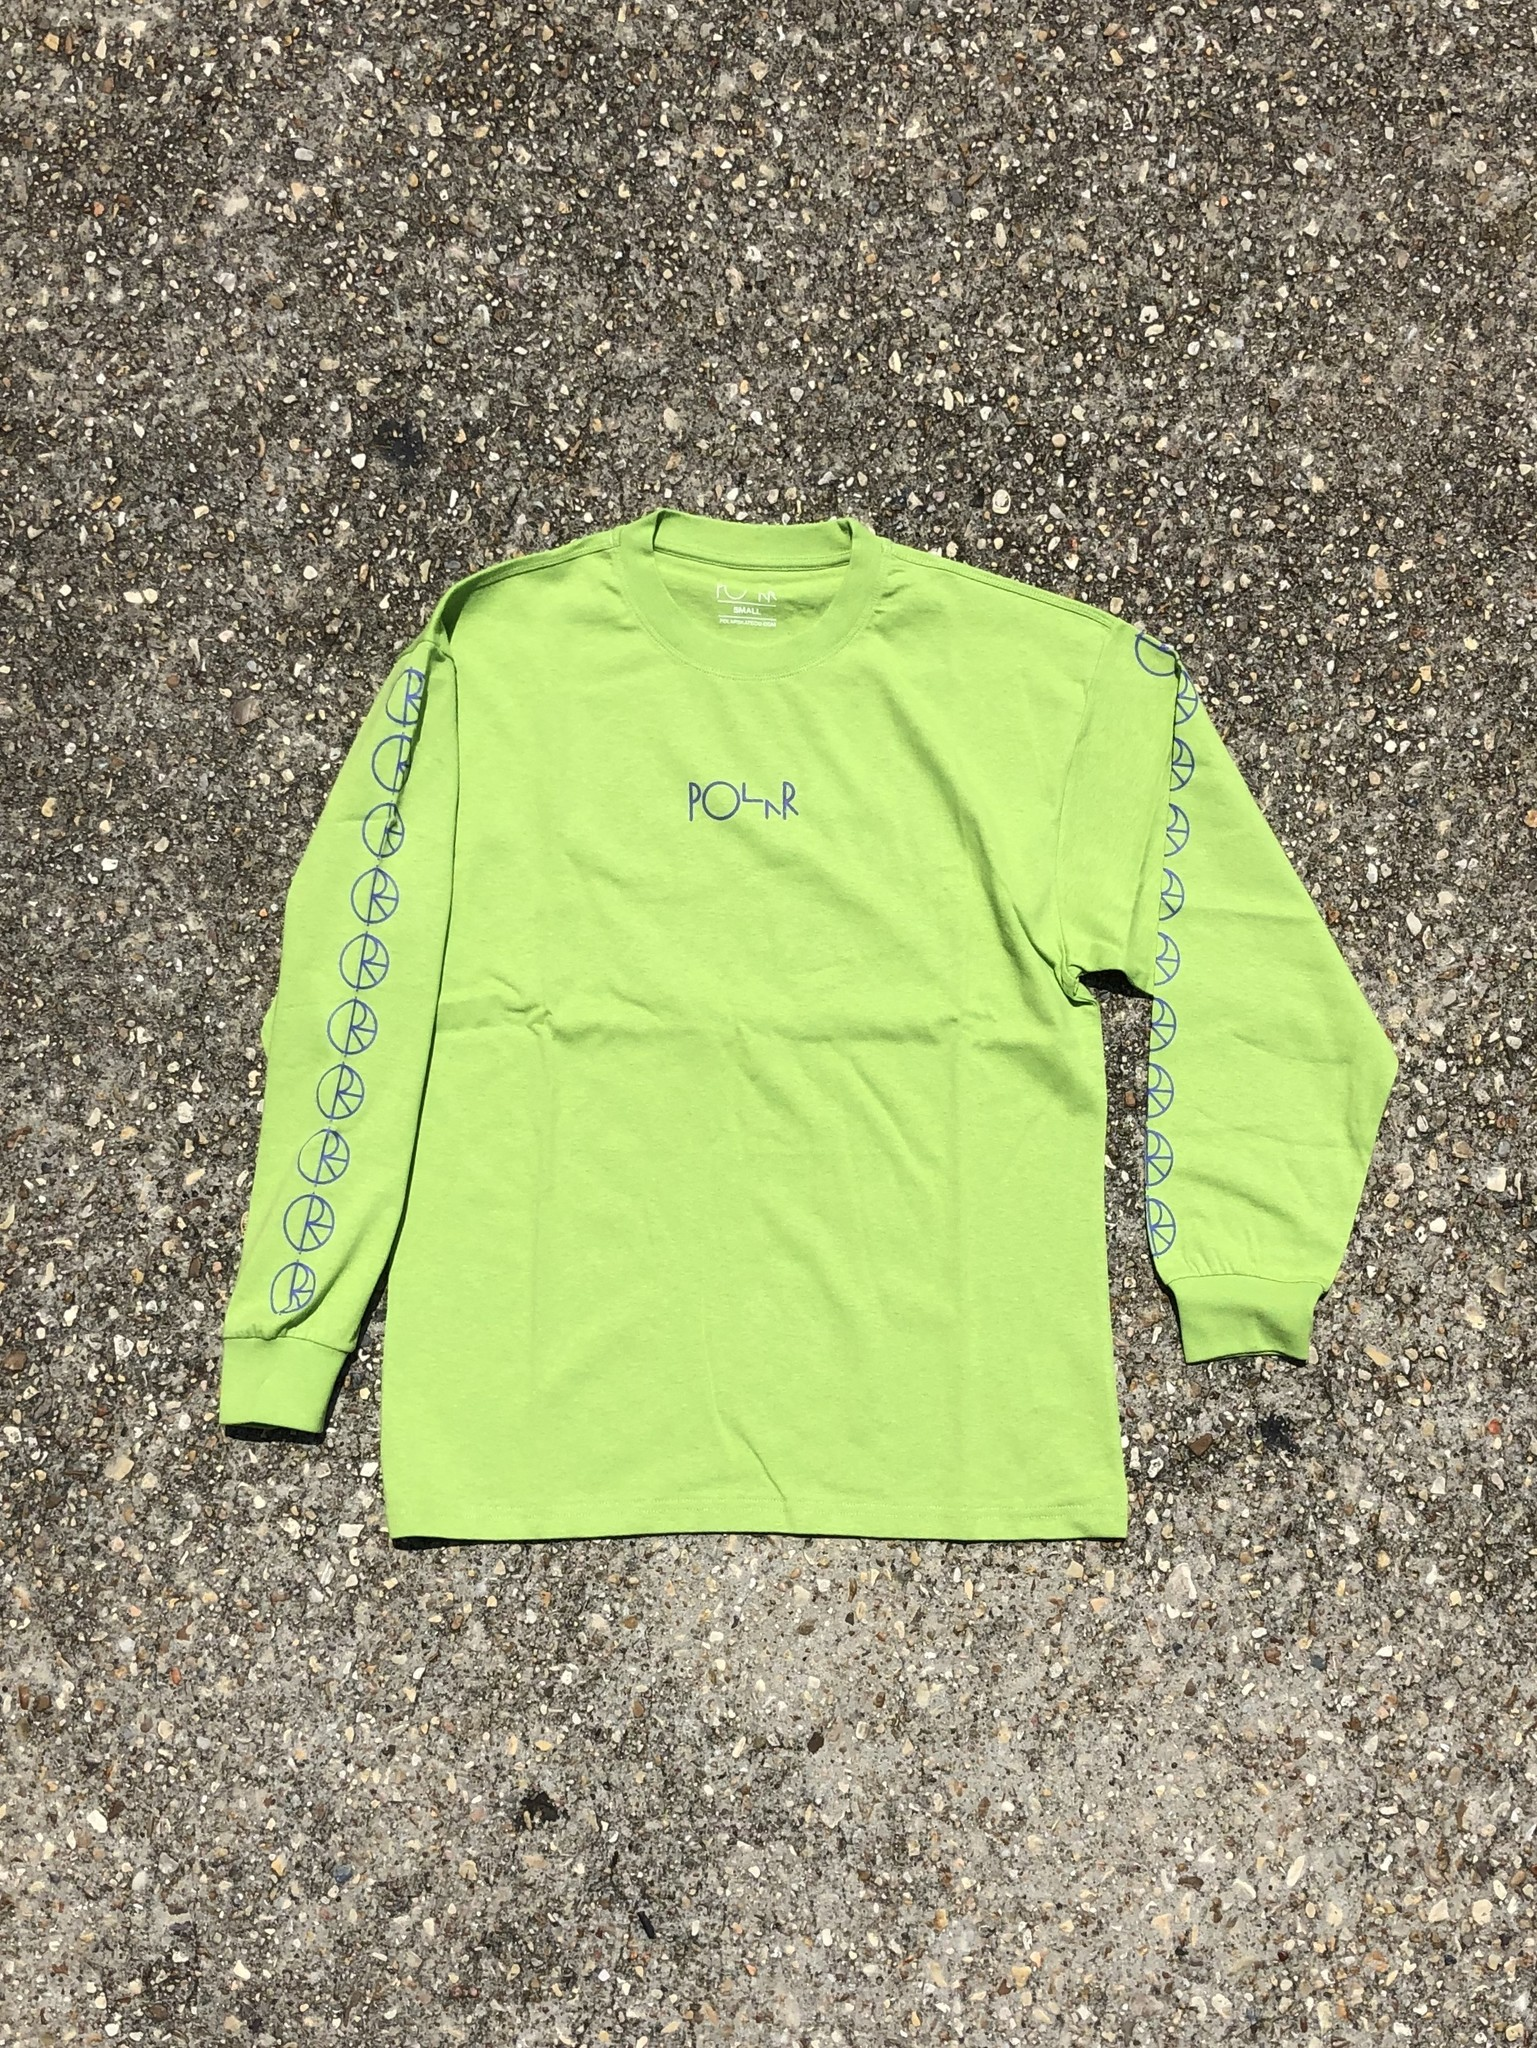 Polar Racing Longsleeve - Lime